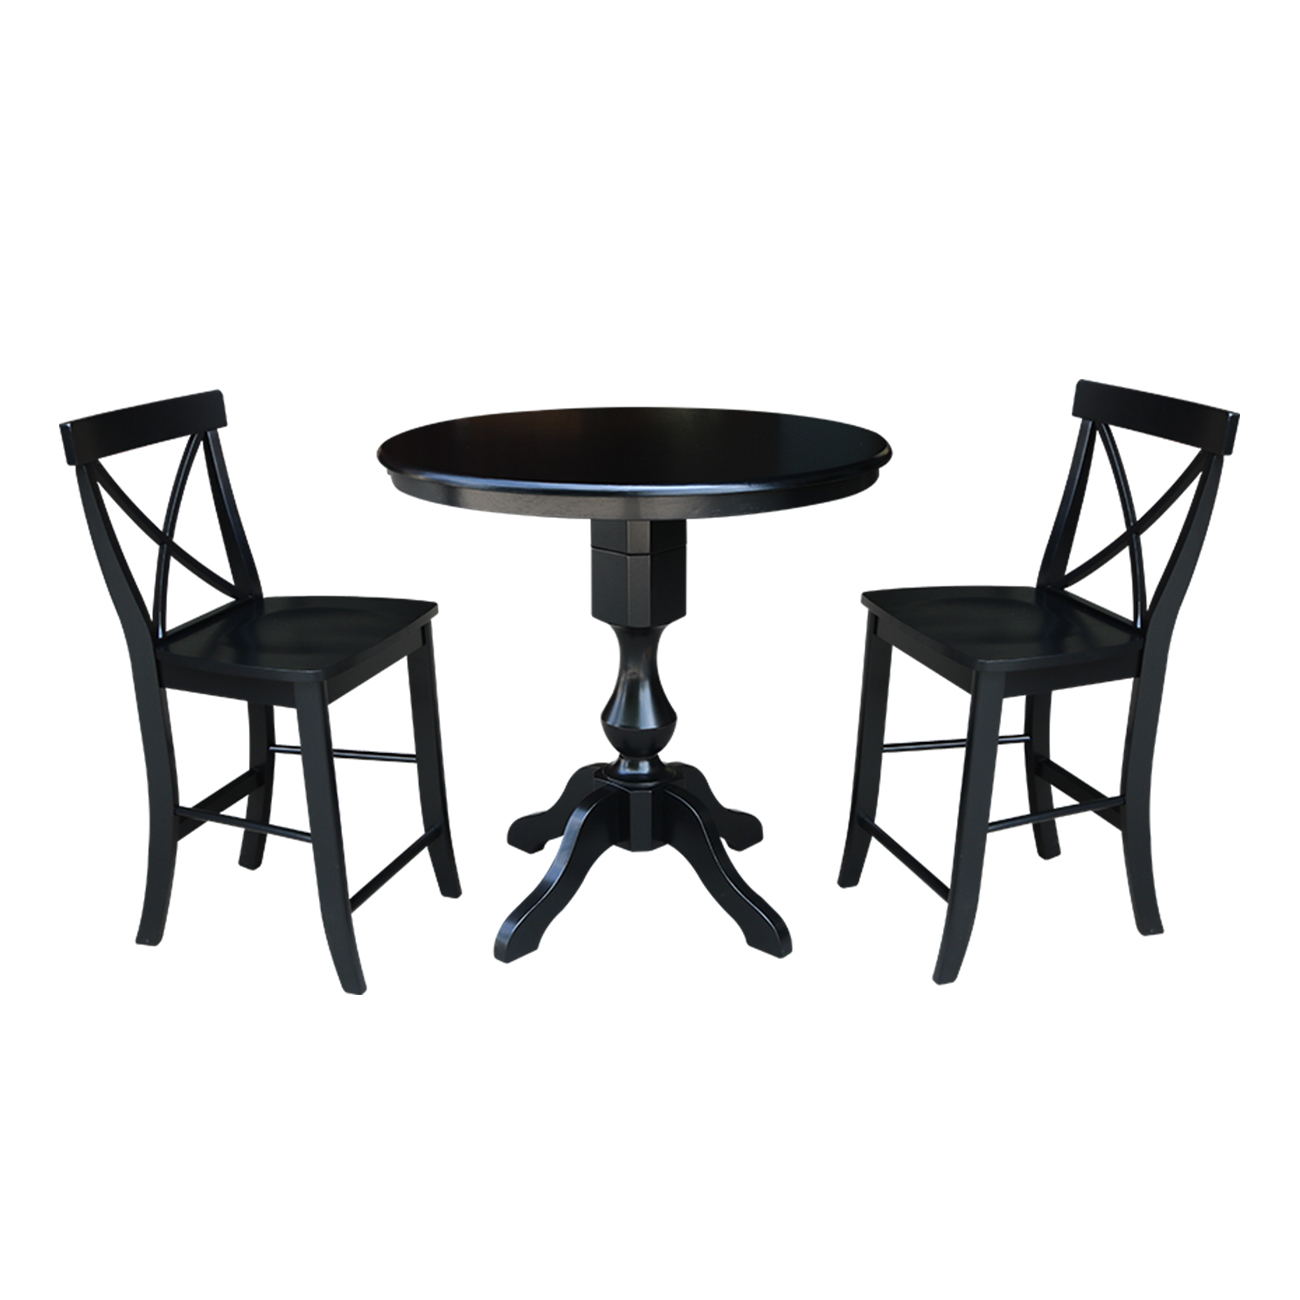 "36"" Round Top Counter Height Table with 2 X-Back Stools - Black - 3 Piece Set"